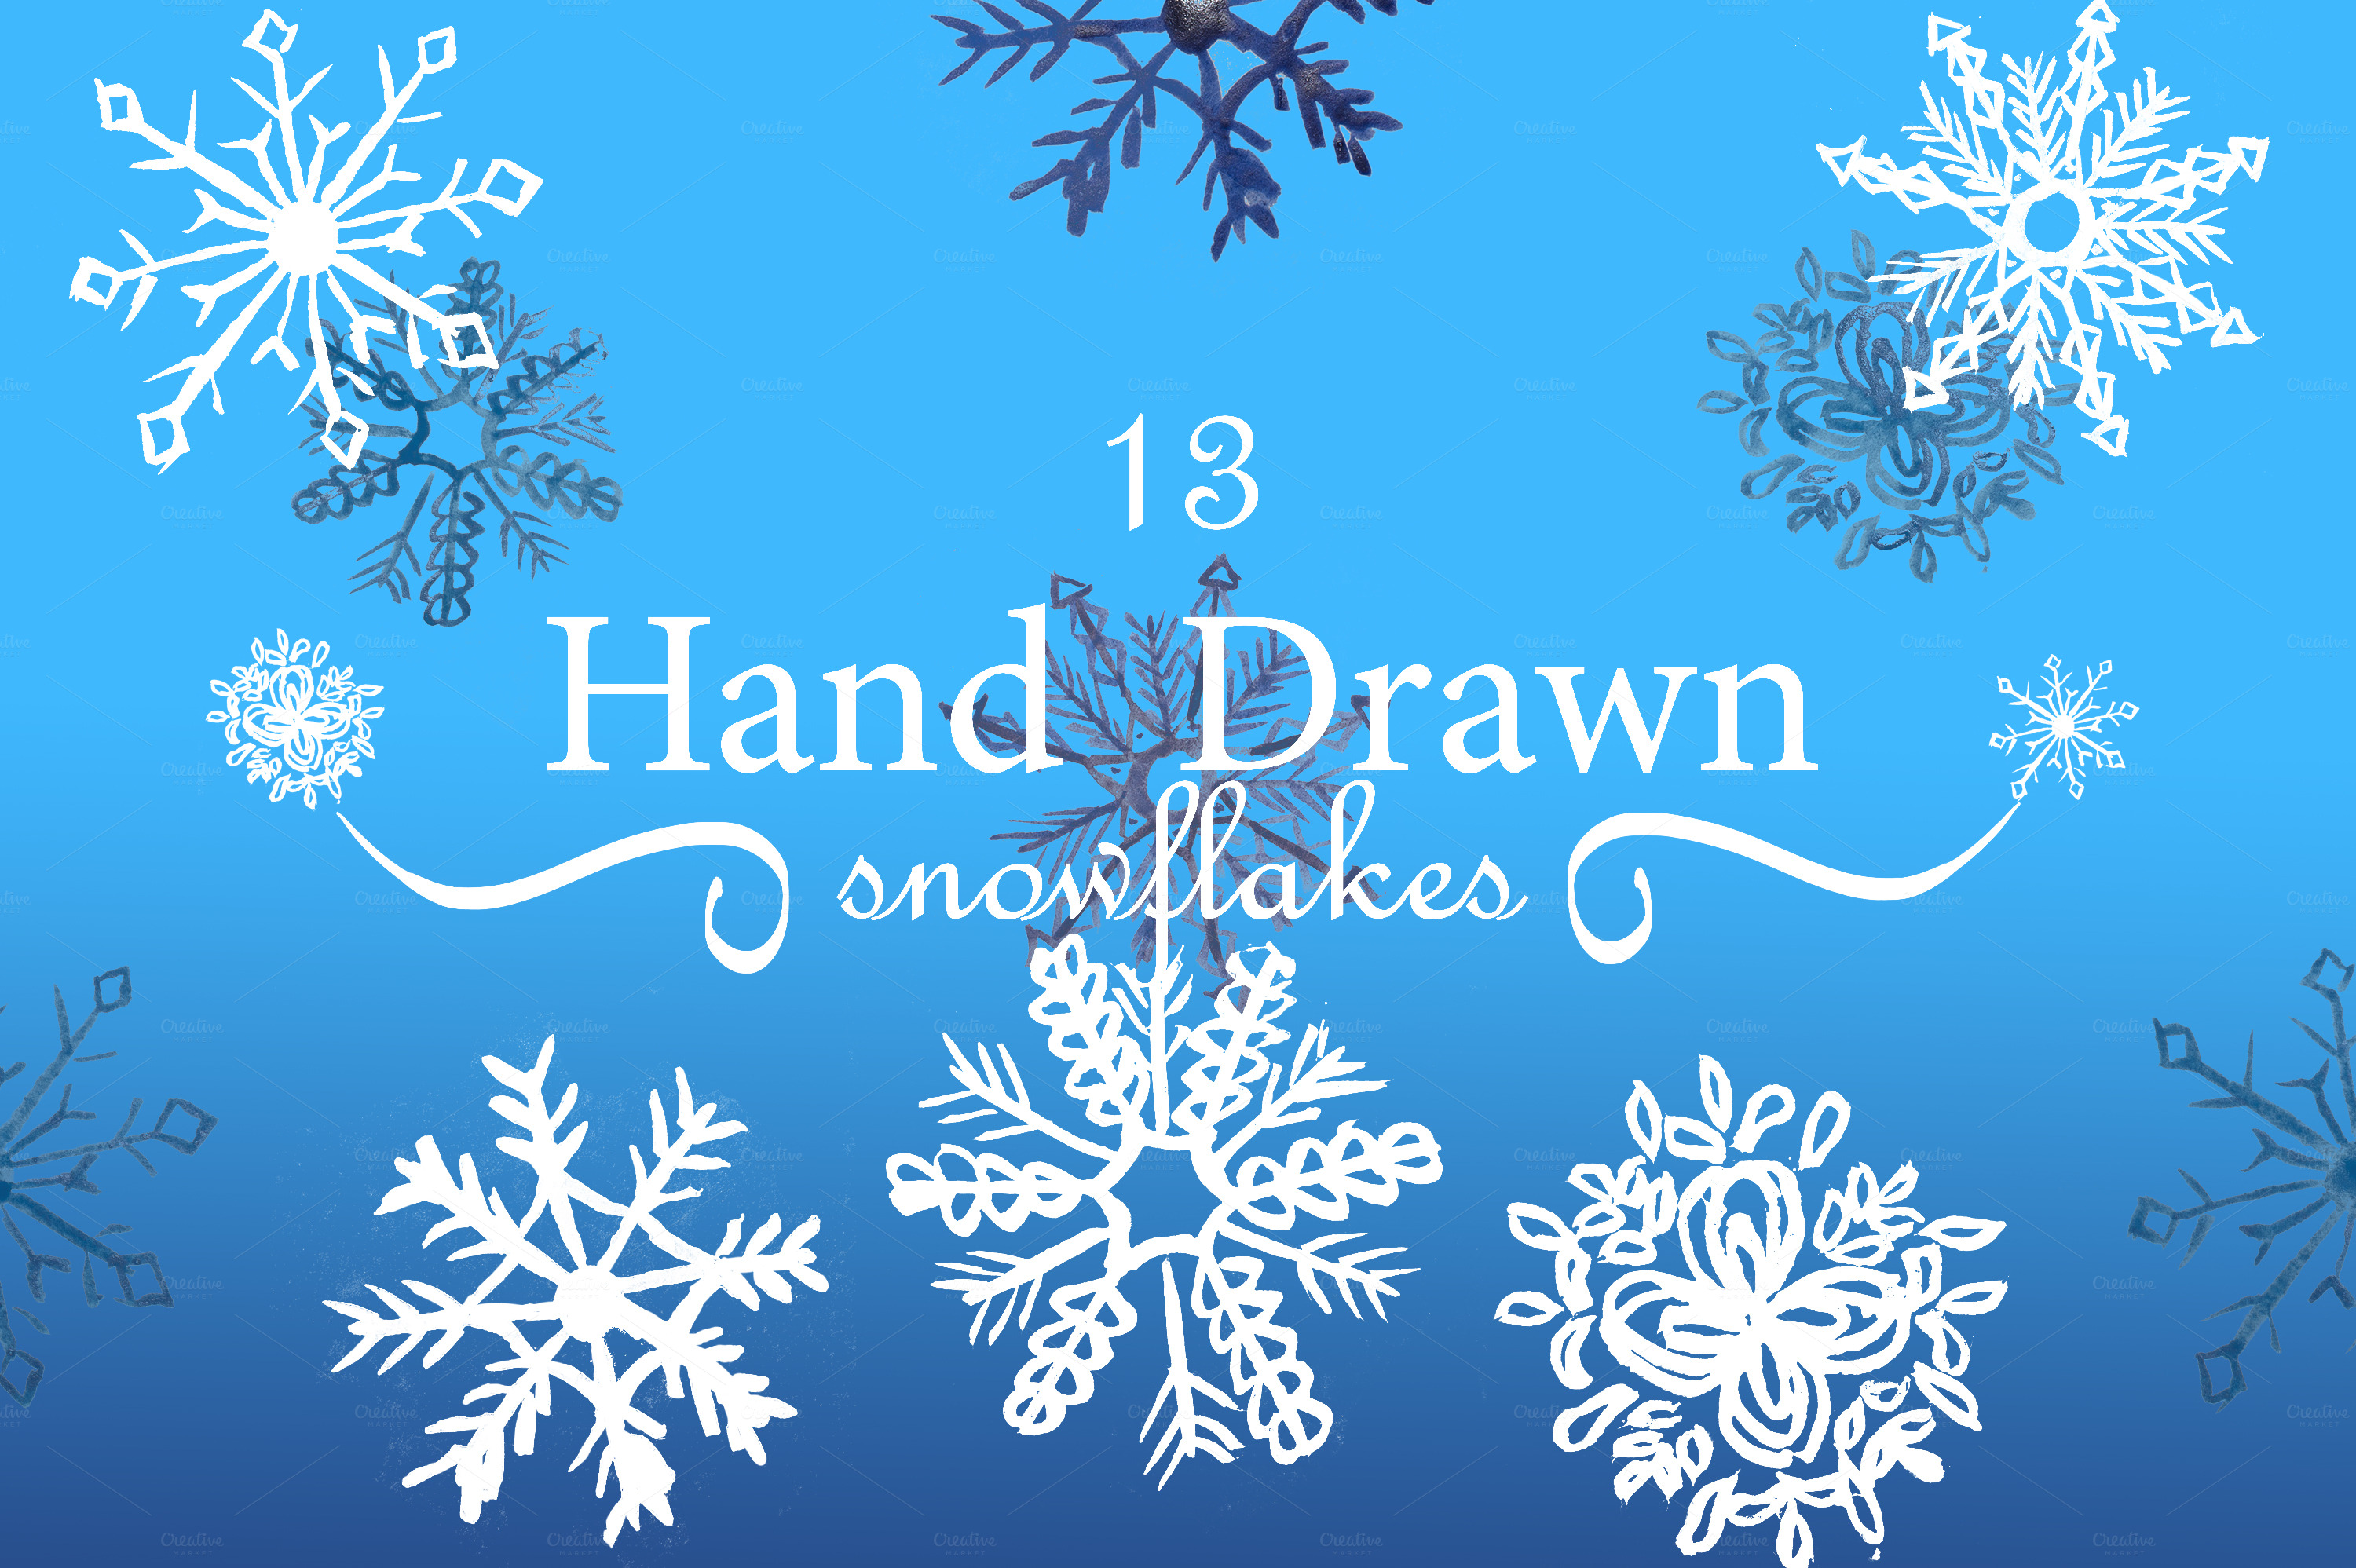 Hand drawn snowflakes objects on creative market